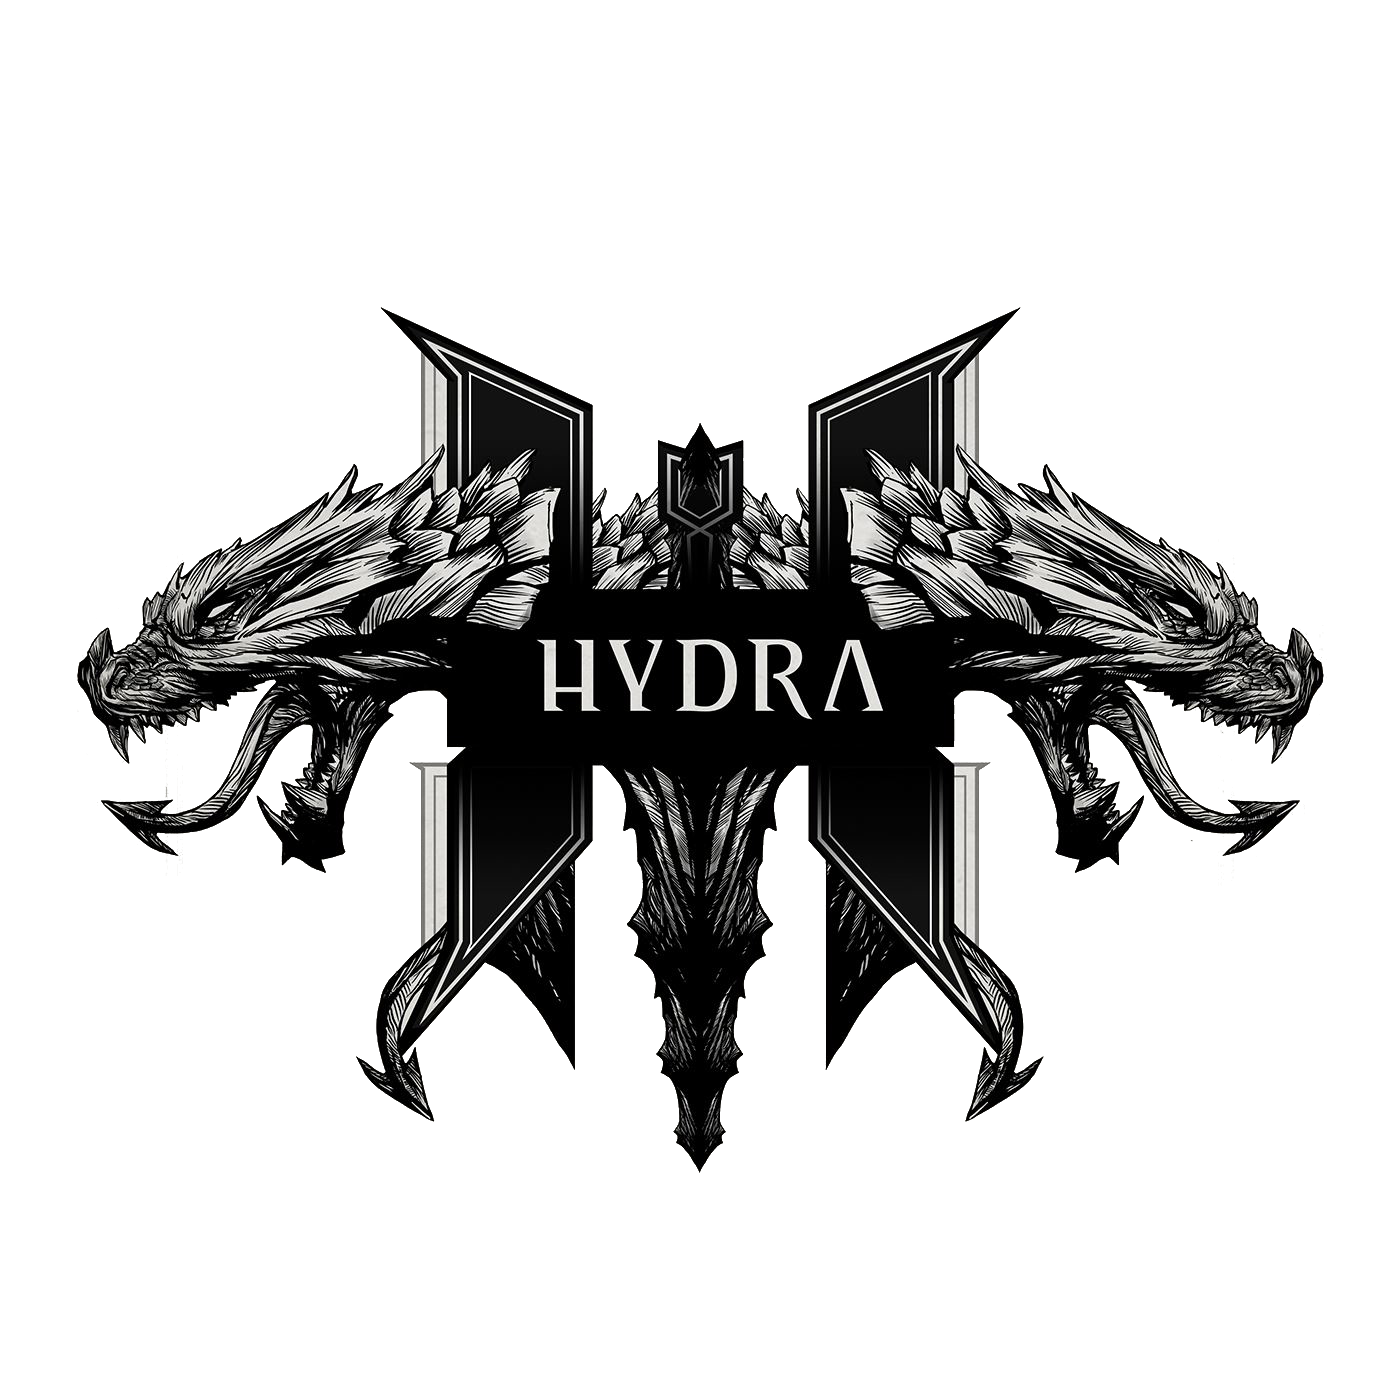 http://fc01.deviantart.net/fs70/f/2013/313/9/3/within_temptation___hydra__logo_png__by_baptistewsf-d6tkdsd.png